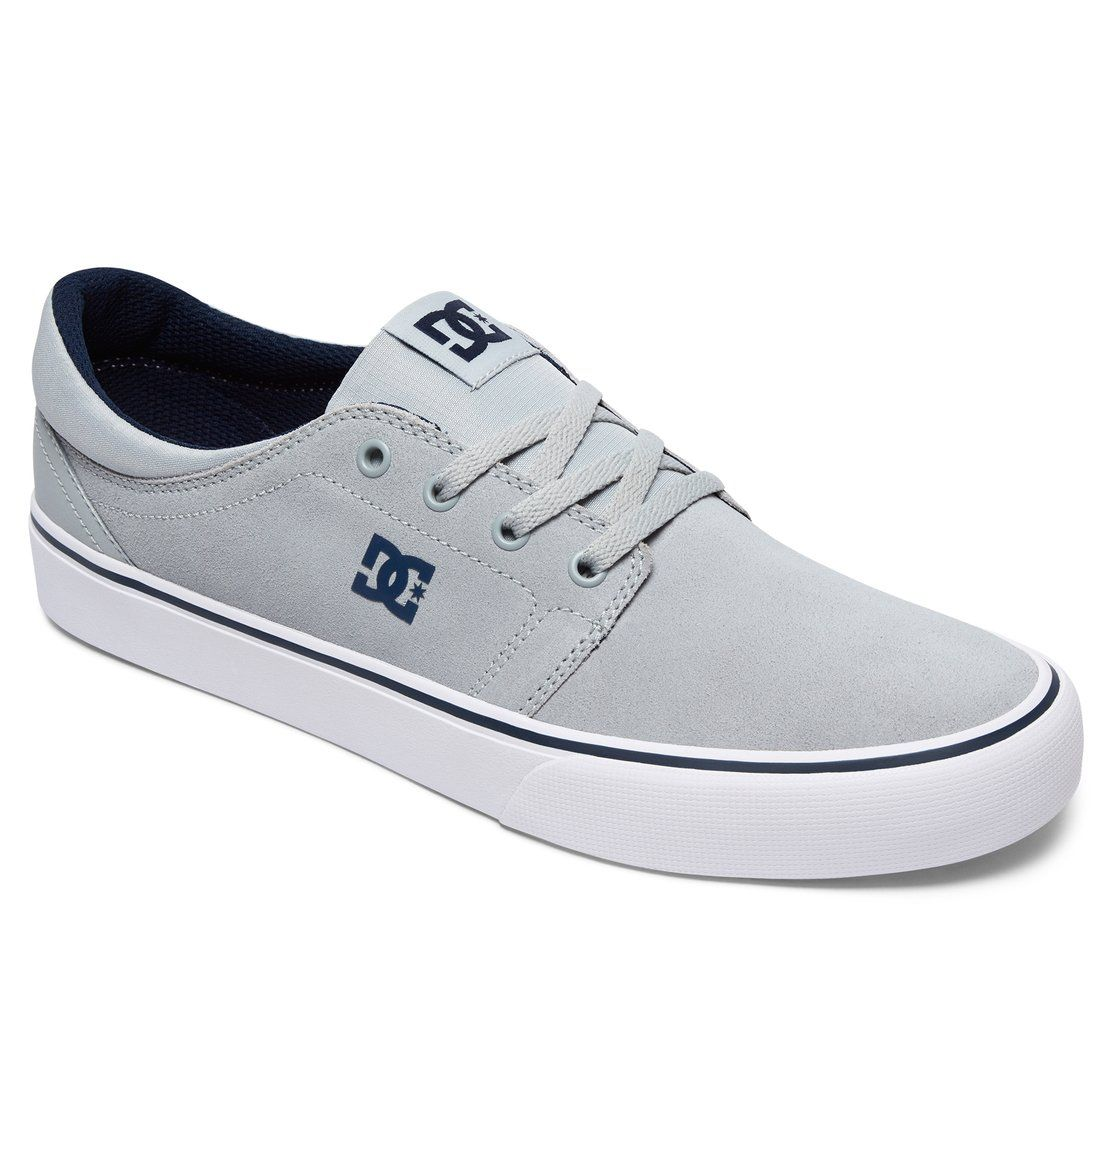 Trase S Skate Shoes | Zapatos